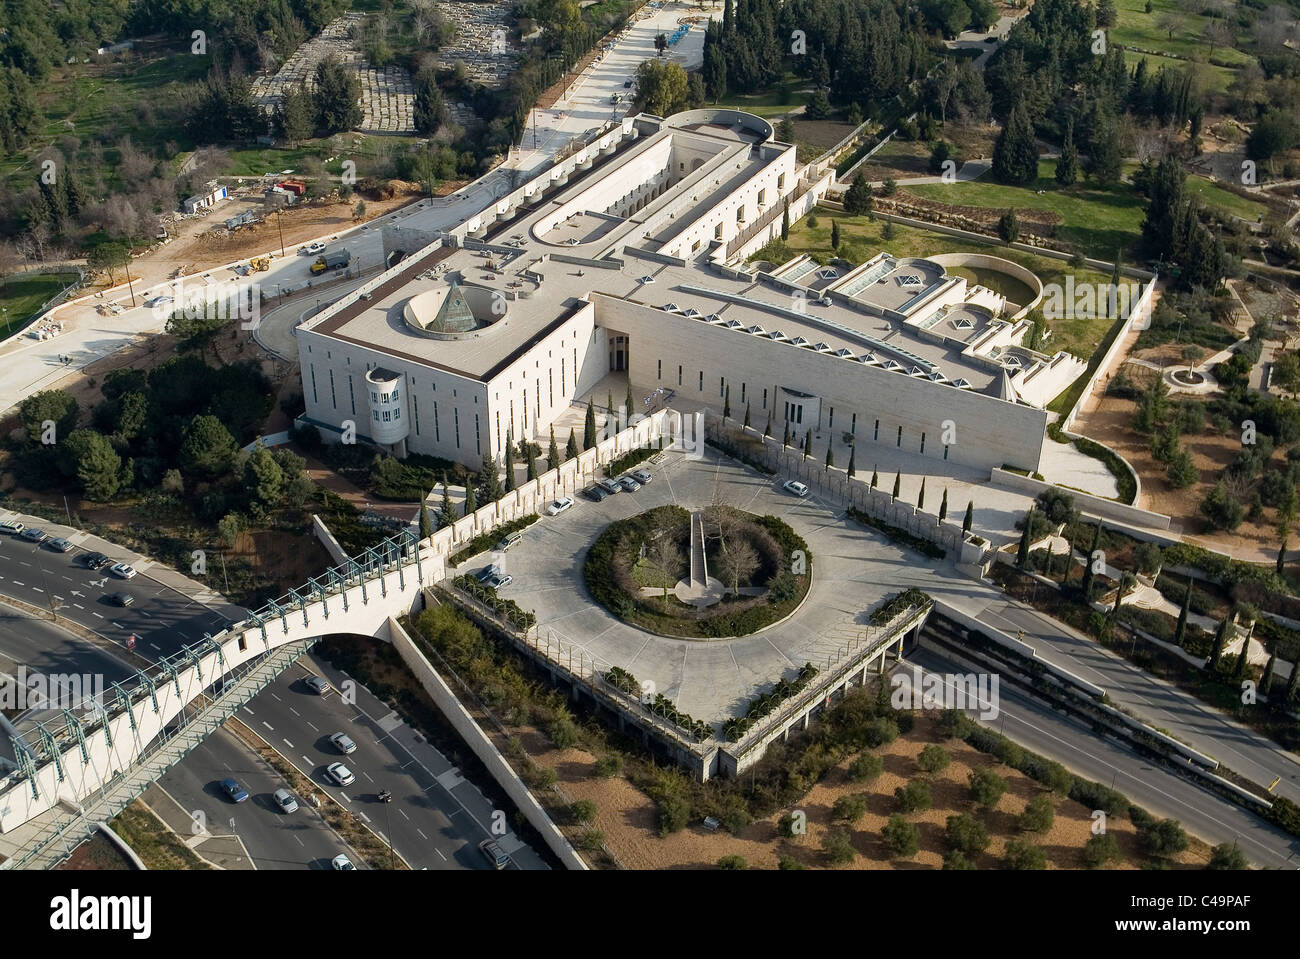 Aerial photograph of the Israeli Supreme Court in Western Jerusalem - Stock Image